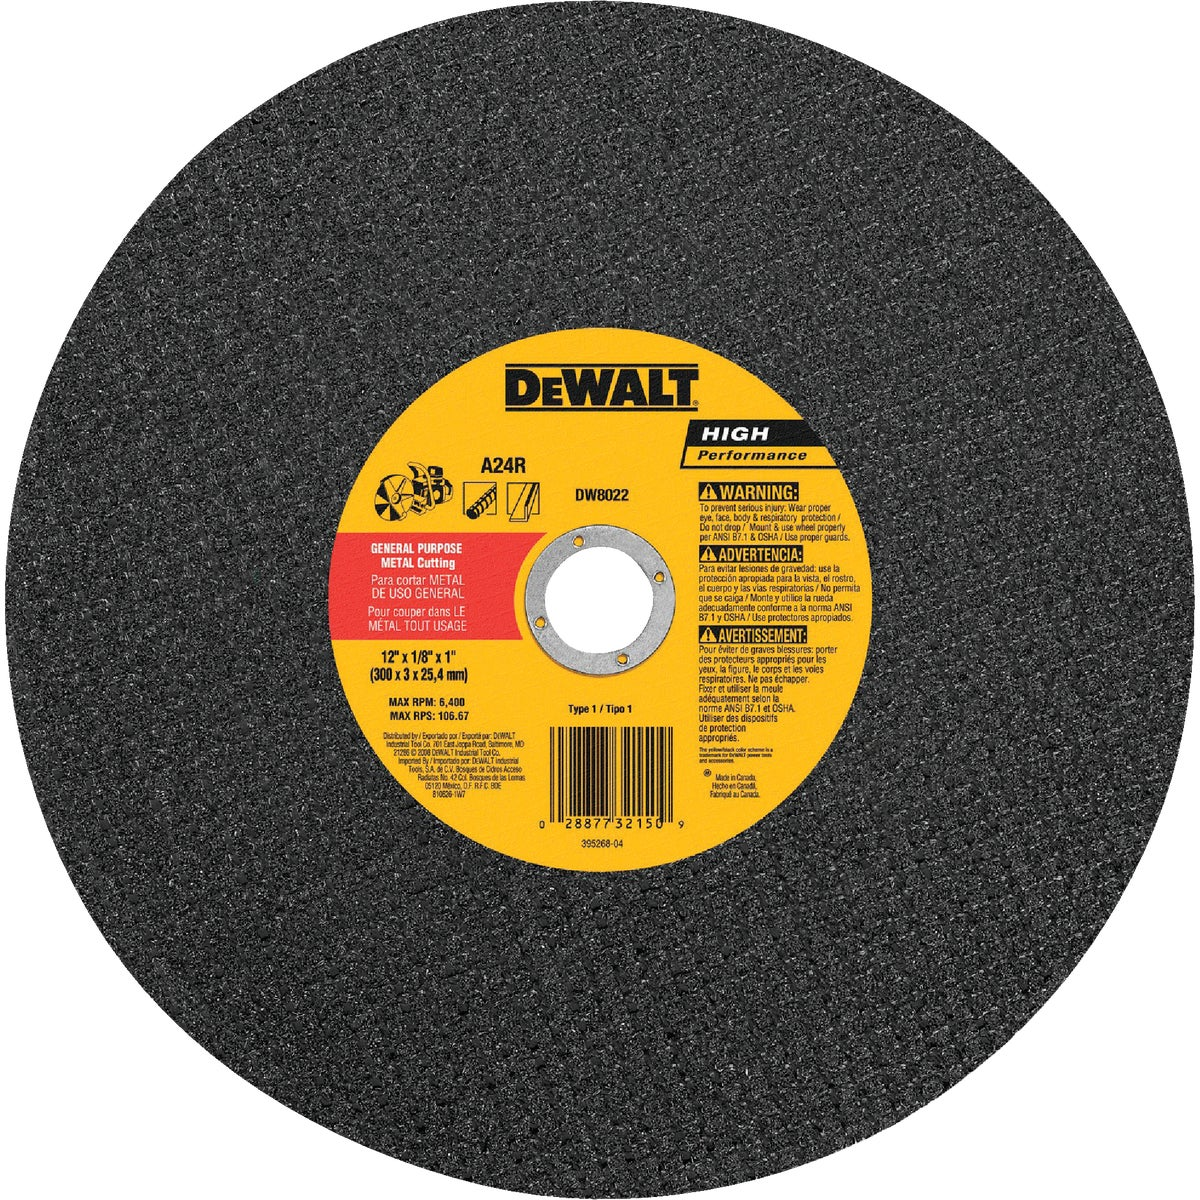 "12"" 1/8X1 METAL BLADE - DW8022 by DeWalt"